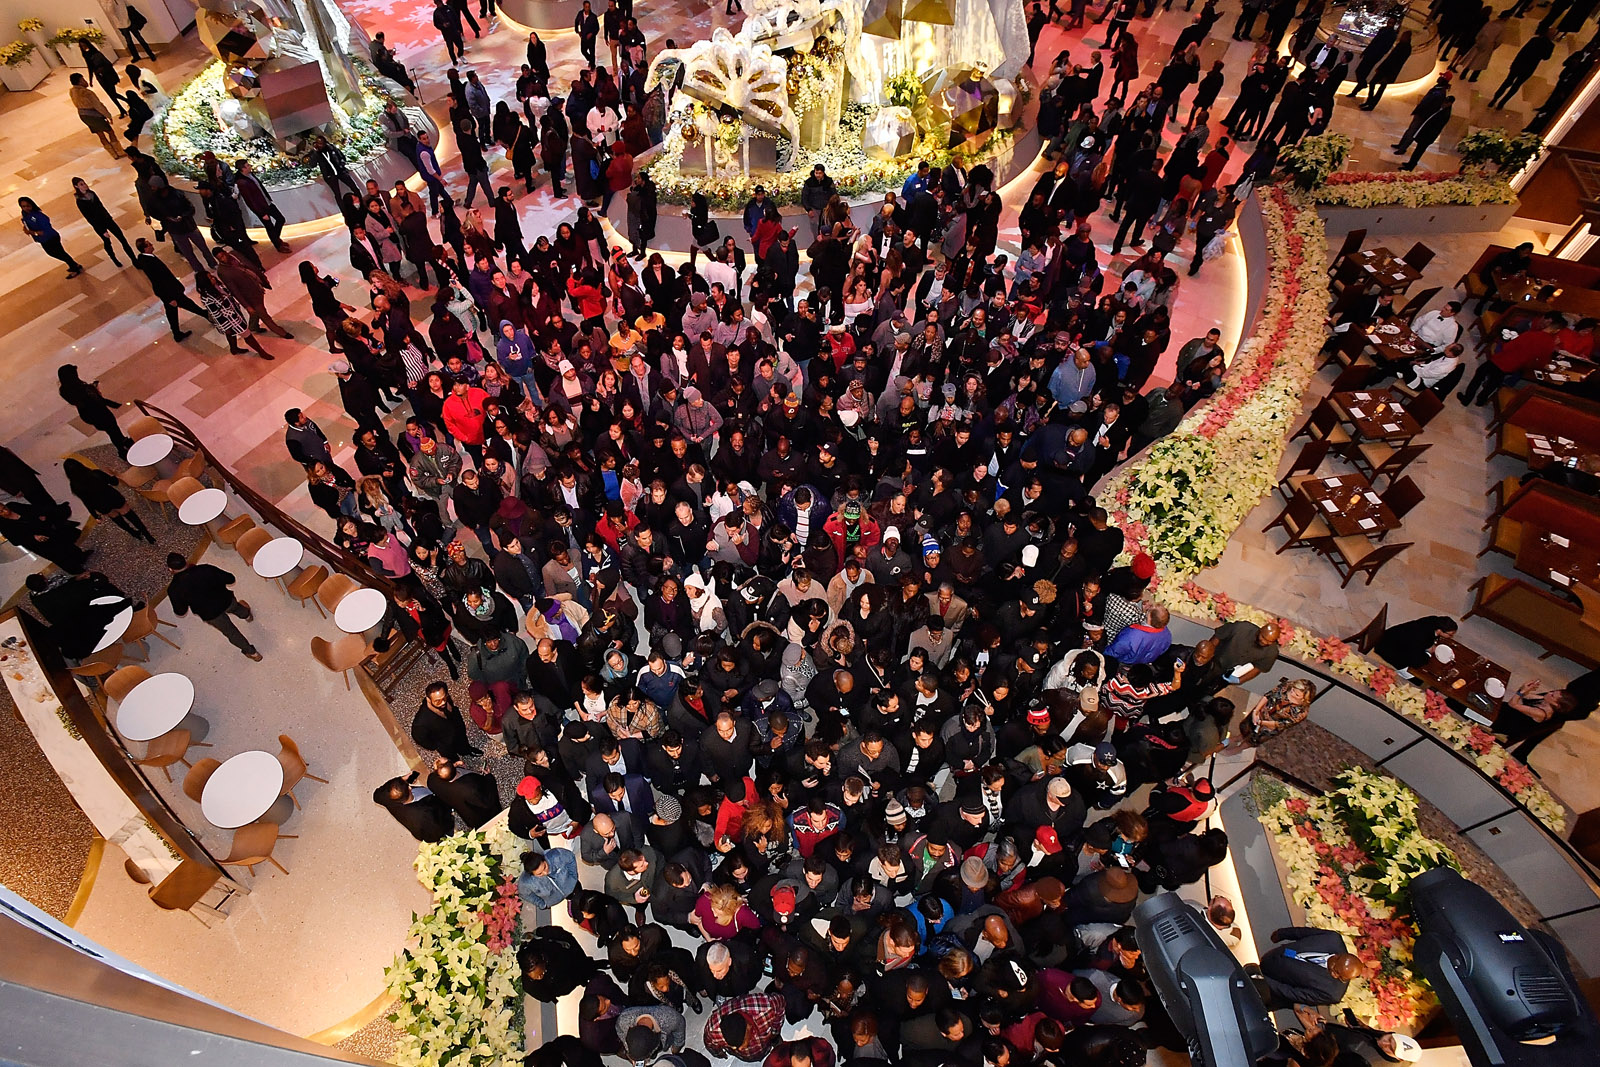 Guests arrive at the MGM National Harbor Grand Opening on December 8, 2016 in National Harbor, Maryland.  (Photo by Larry French/Getty Images for MGM National Harbor)